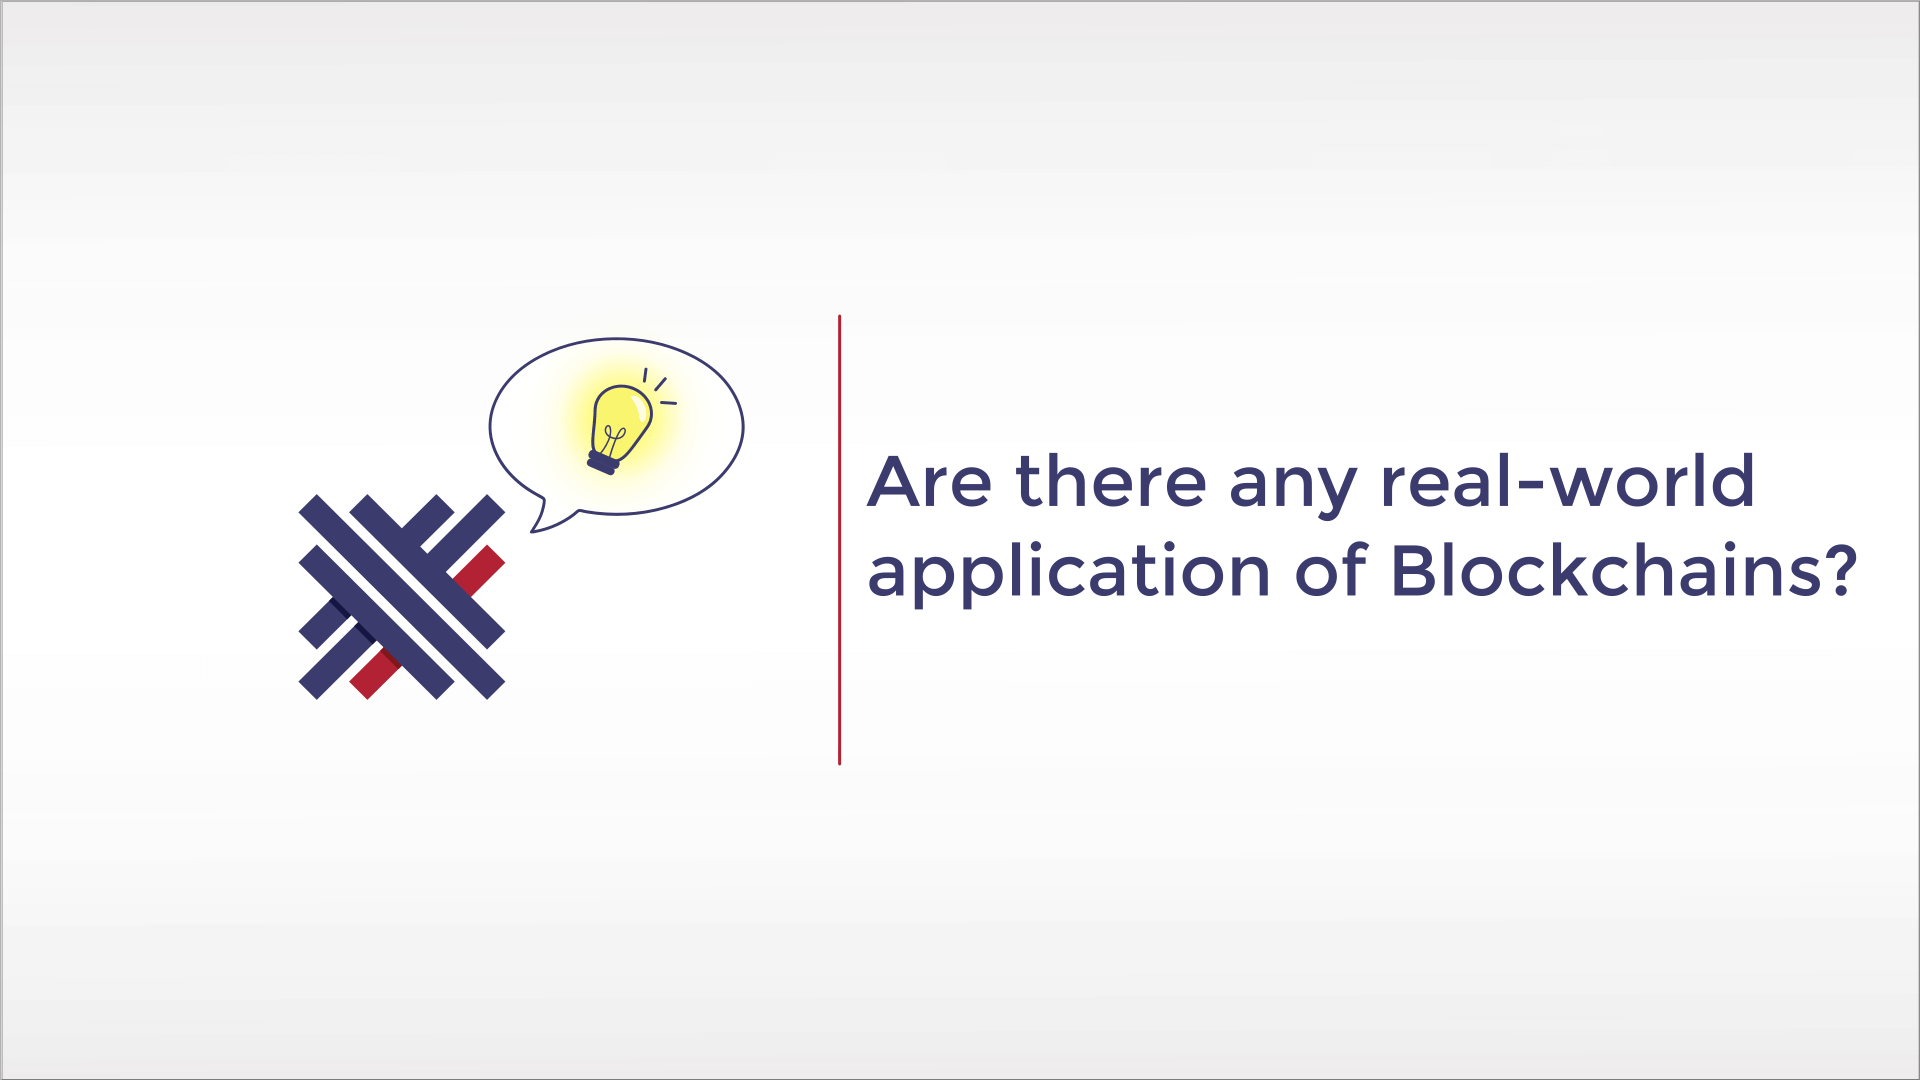 Are there any real-world application of Blockchains outside of Cryptocurrencies?